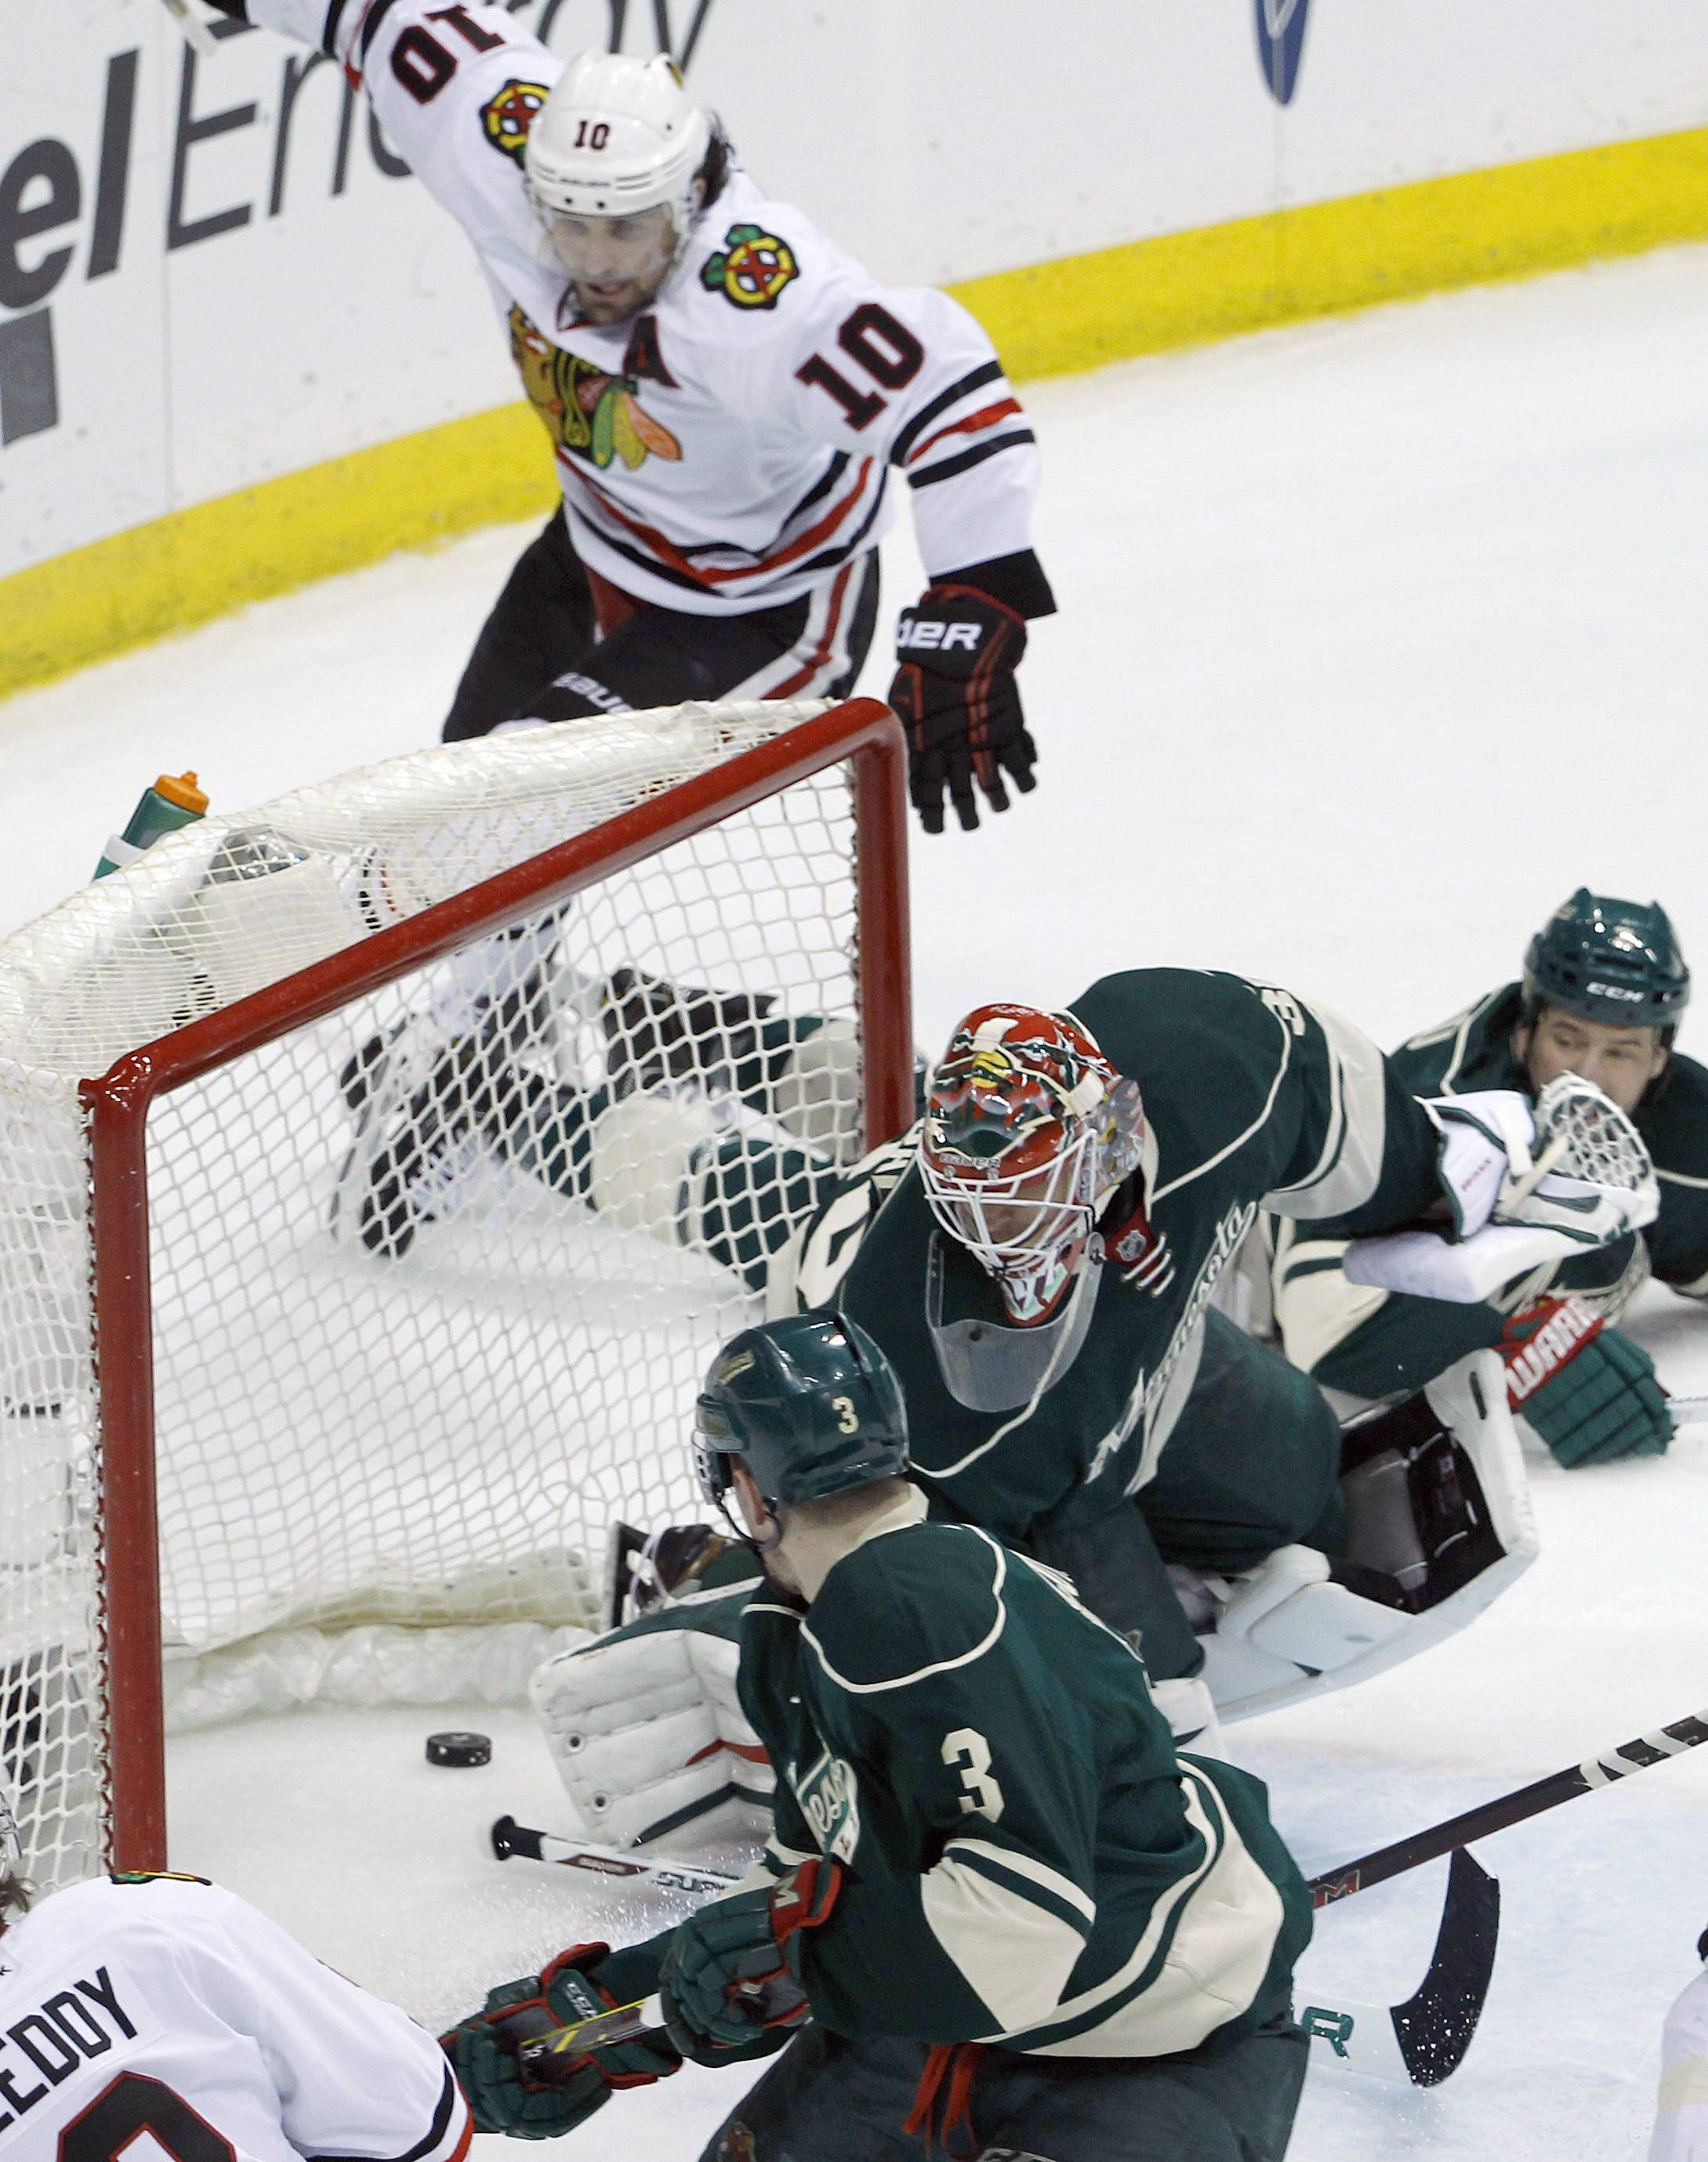 Minnesota Wild goalie Ilya Bryzgalov, center, and Wild center Charlie Coyle (3) are near as a shot by Chicago Blackhawks left wing Patrick Sharp (10) goes in during the first period.